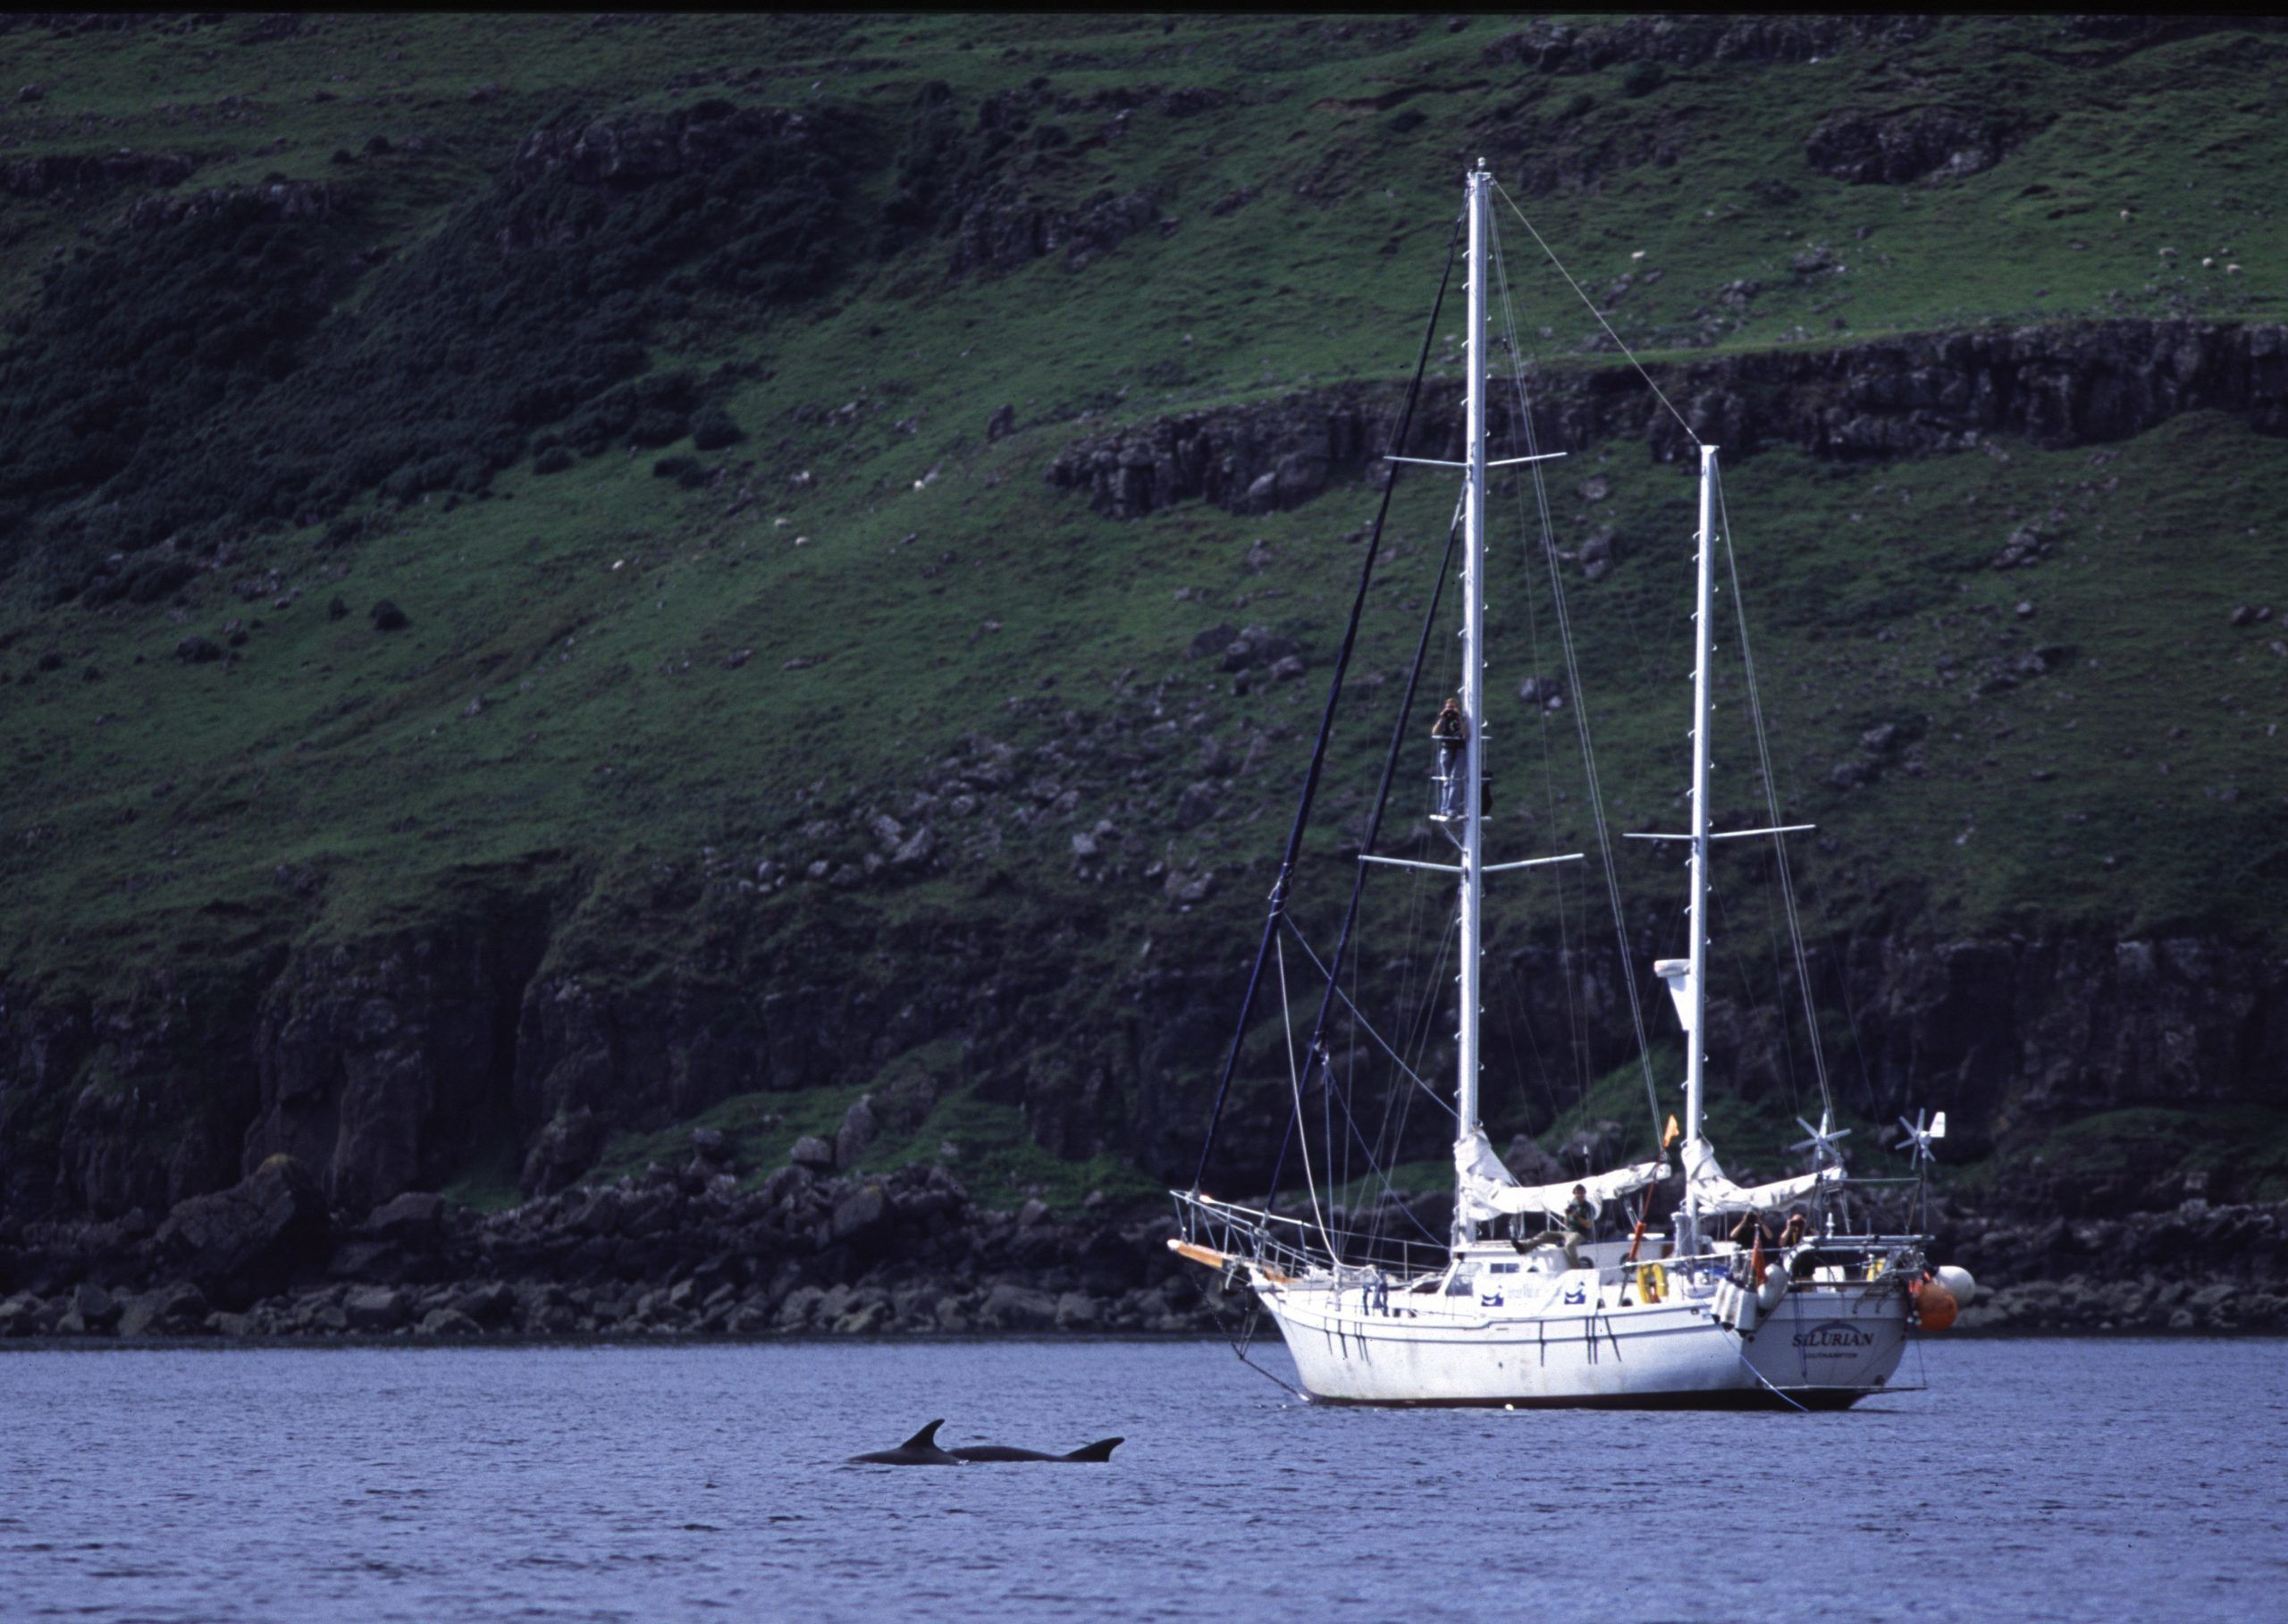 Research boat and bottlenose dolphins